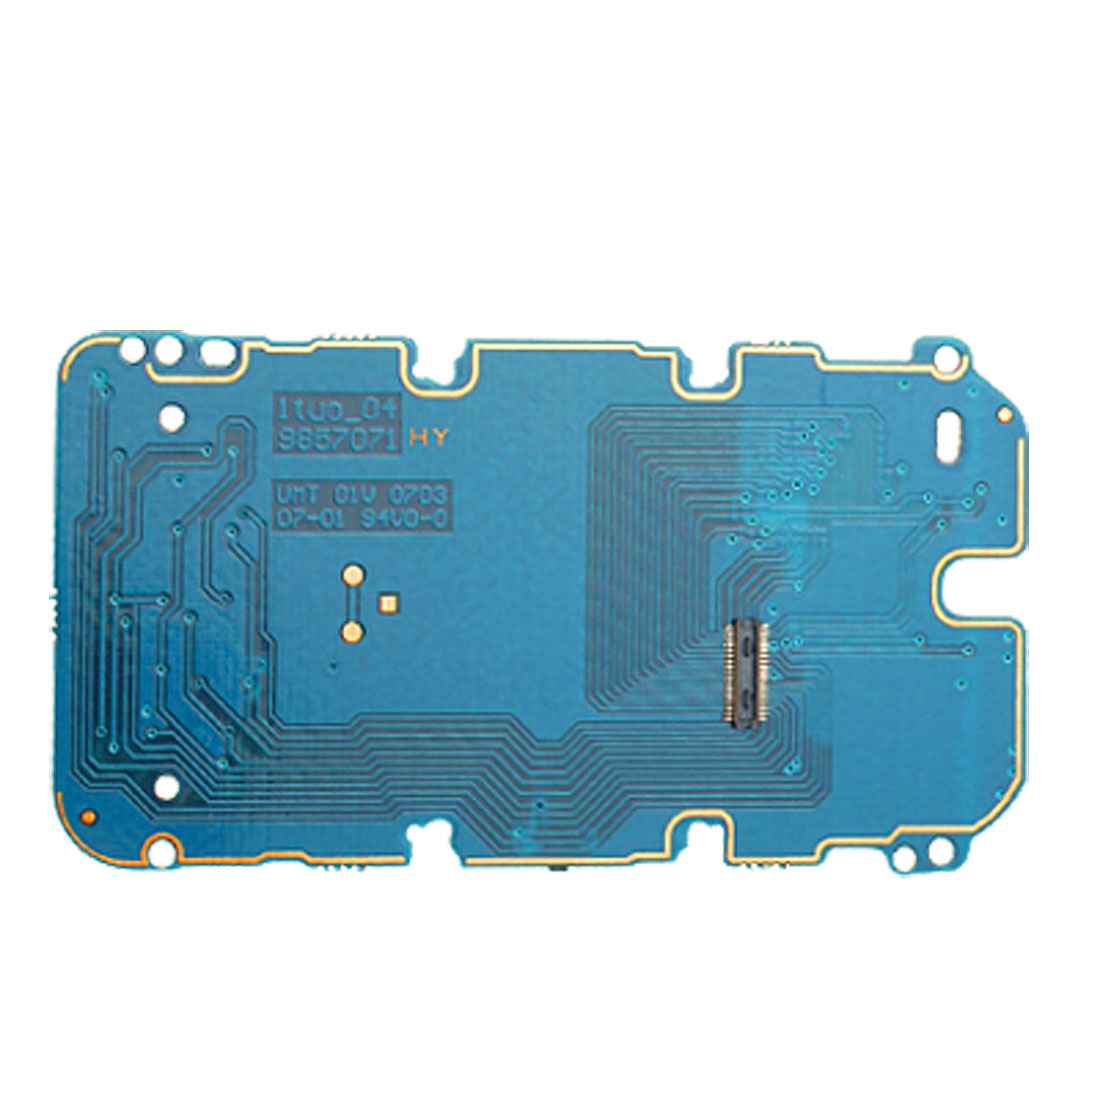 LCD Board PCB Keypad Keyboard Membrane for Nokia 5200